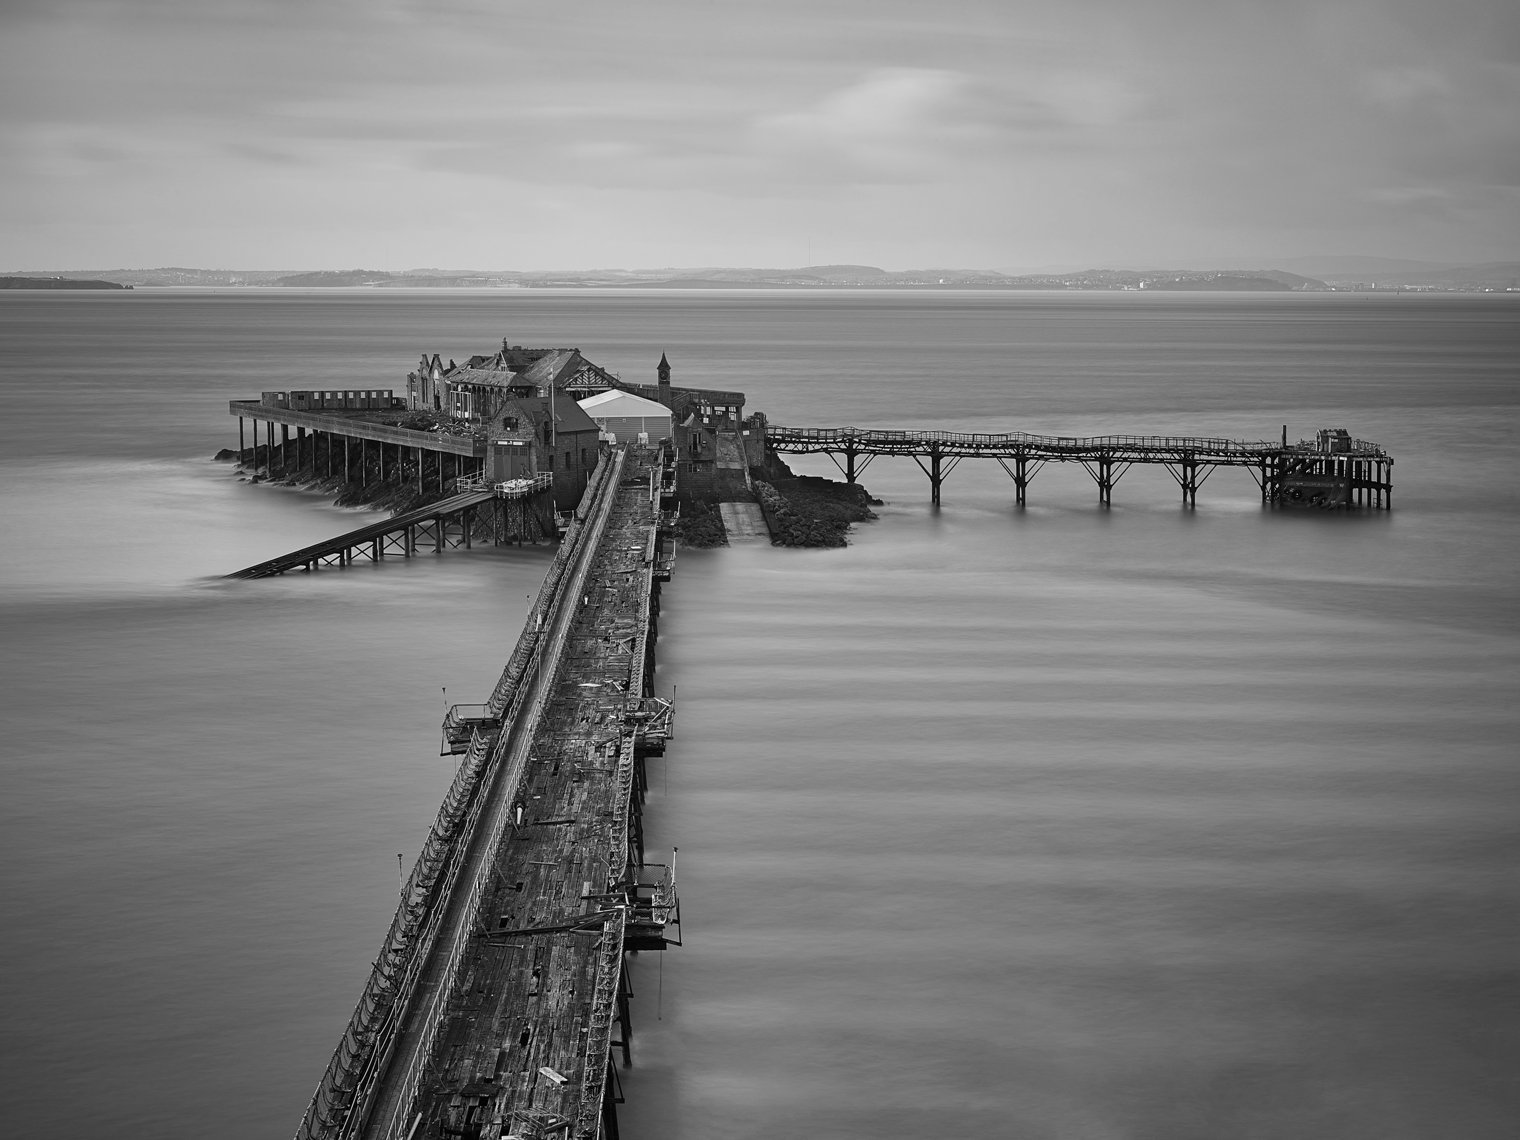 Jon Wyatt Photography - Waves breaking around Birnbeck Pier in North Somerset